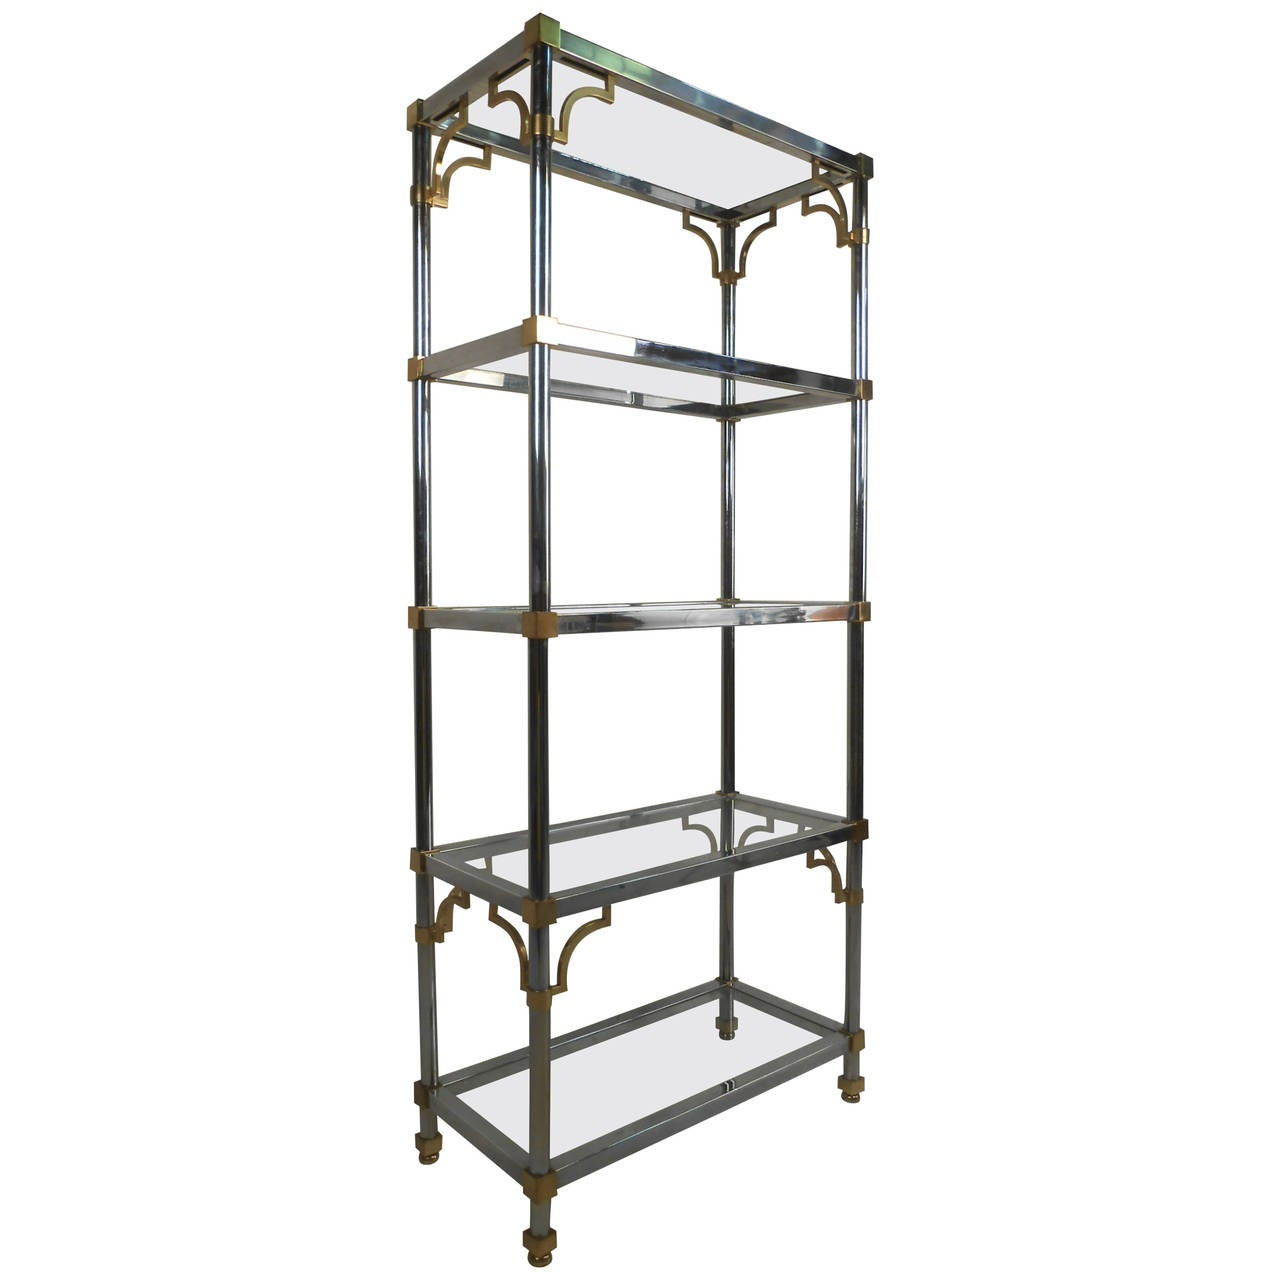 Midcentury regency style chrome and brass etagere by maison jansen at 1stdibs - Etagere faite maison ...